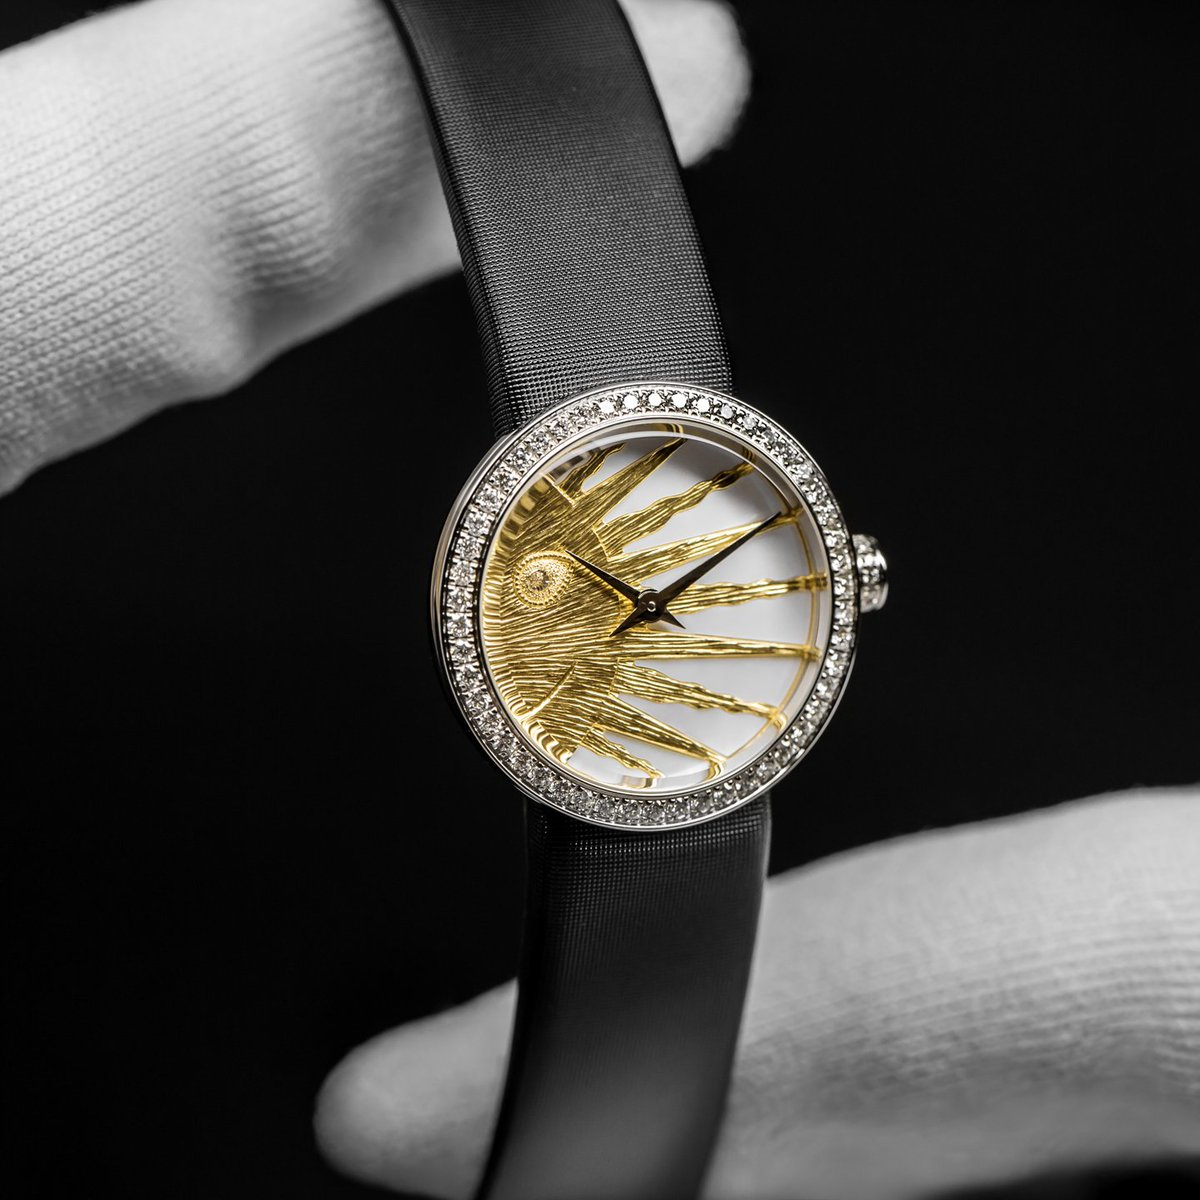 Inspired by Monsieur Diors passion for astrology, and pairing a golden sun and polished moon, Rose Céleste, Victoire de Castellanes #DiorHorlogerie latest addition to the La Mini D de Dior timepiece collection is now available on.dior.com/d-de-dior. #DiorSavoirFaire